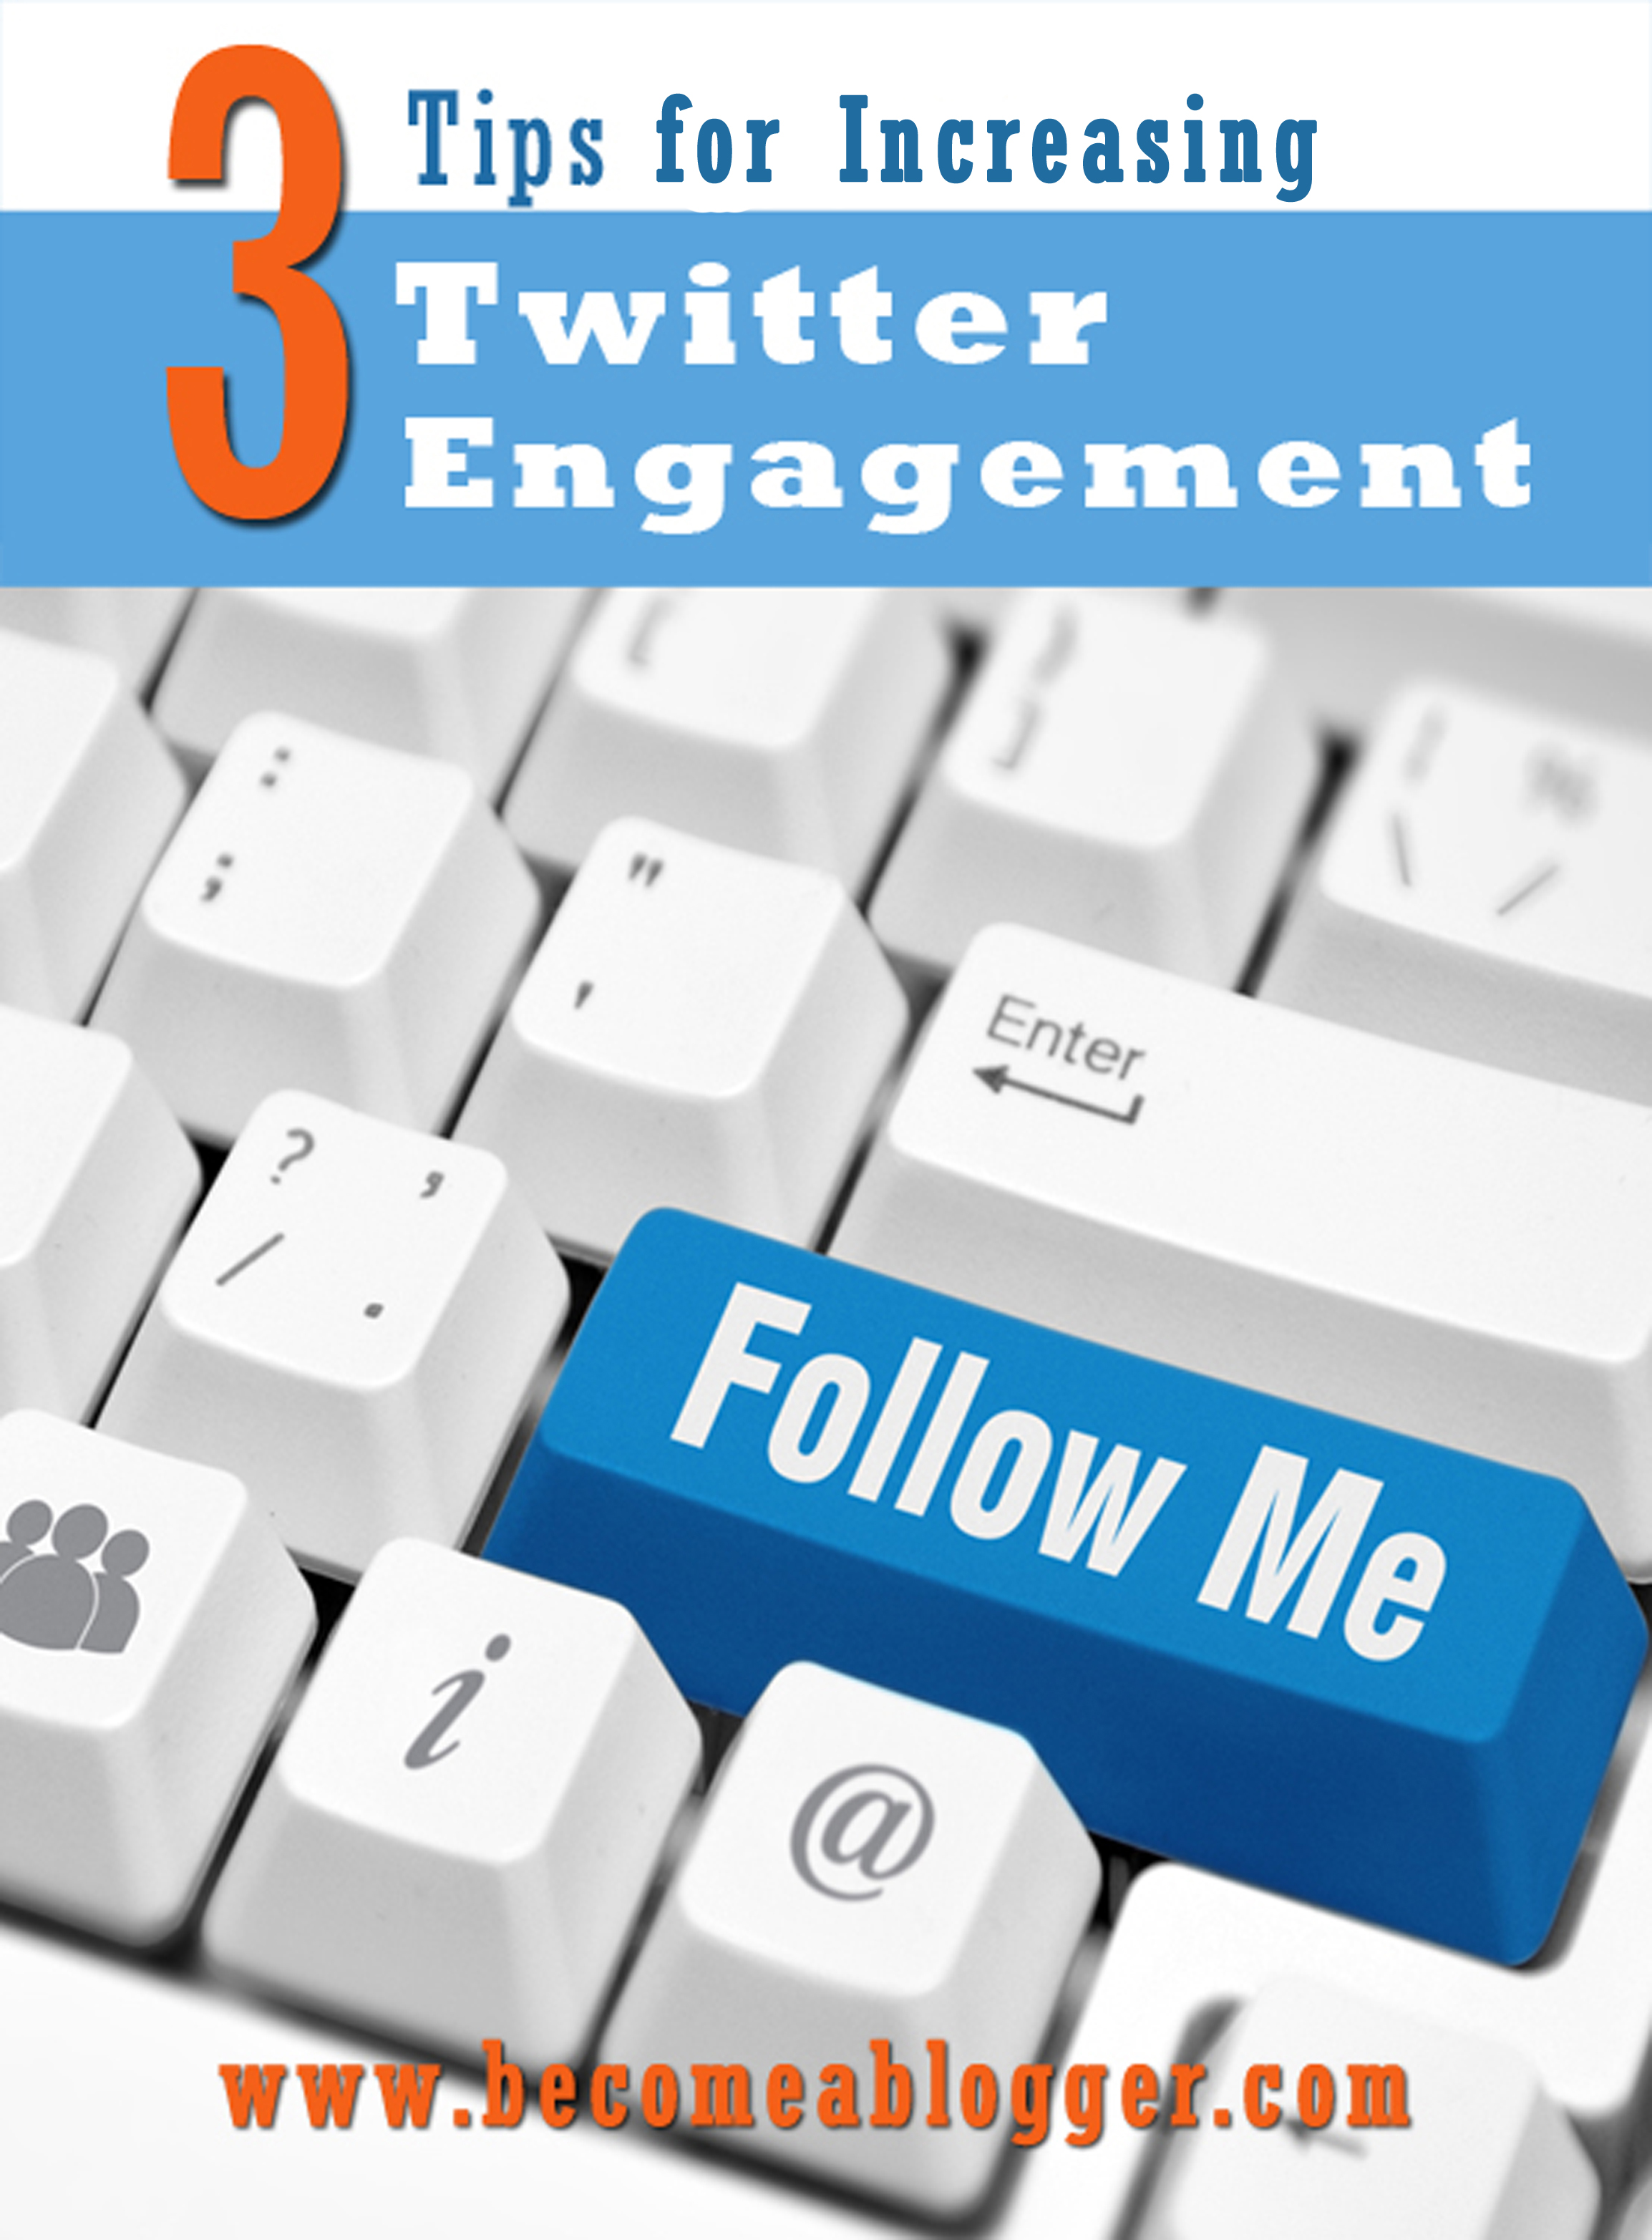 2_3 Tips for Increasing Twitter Engagement